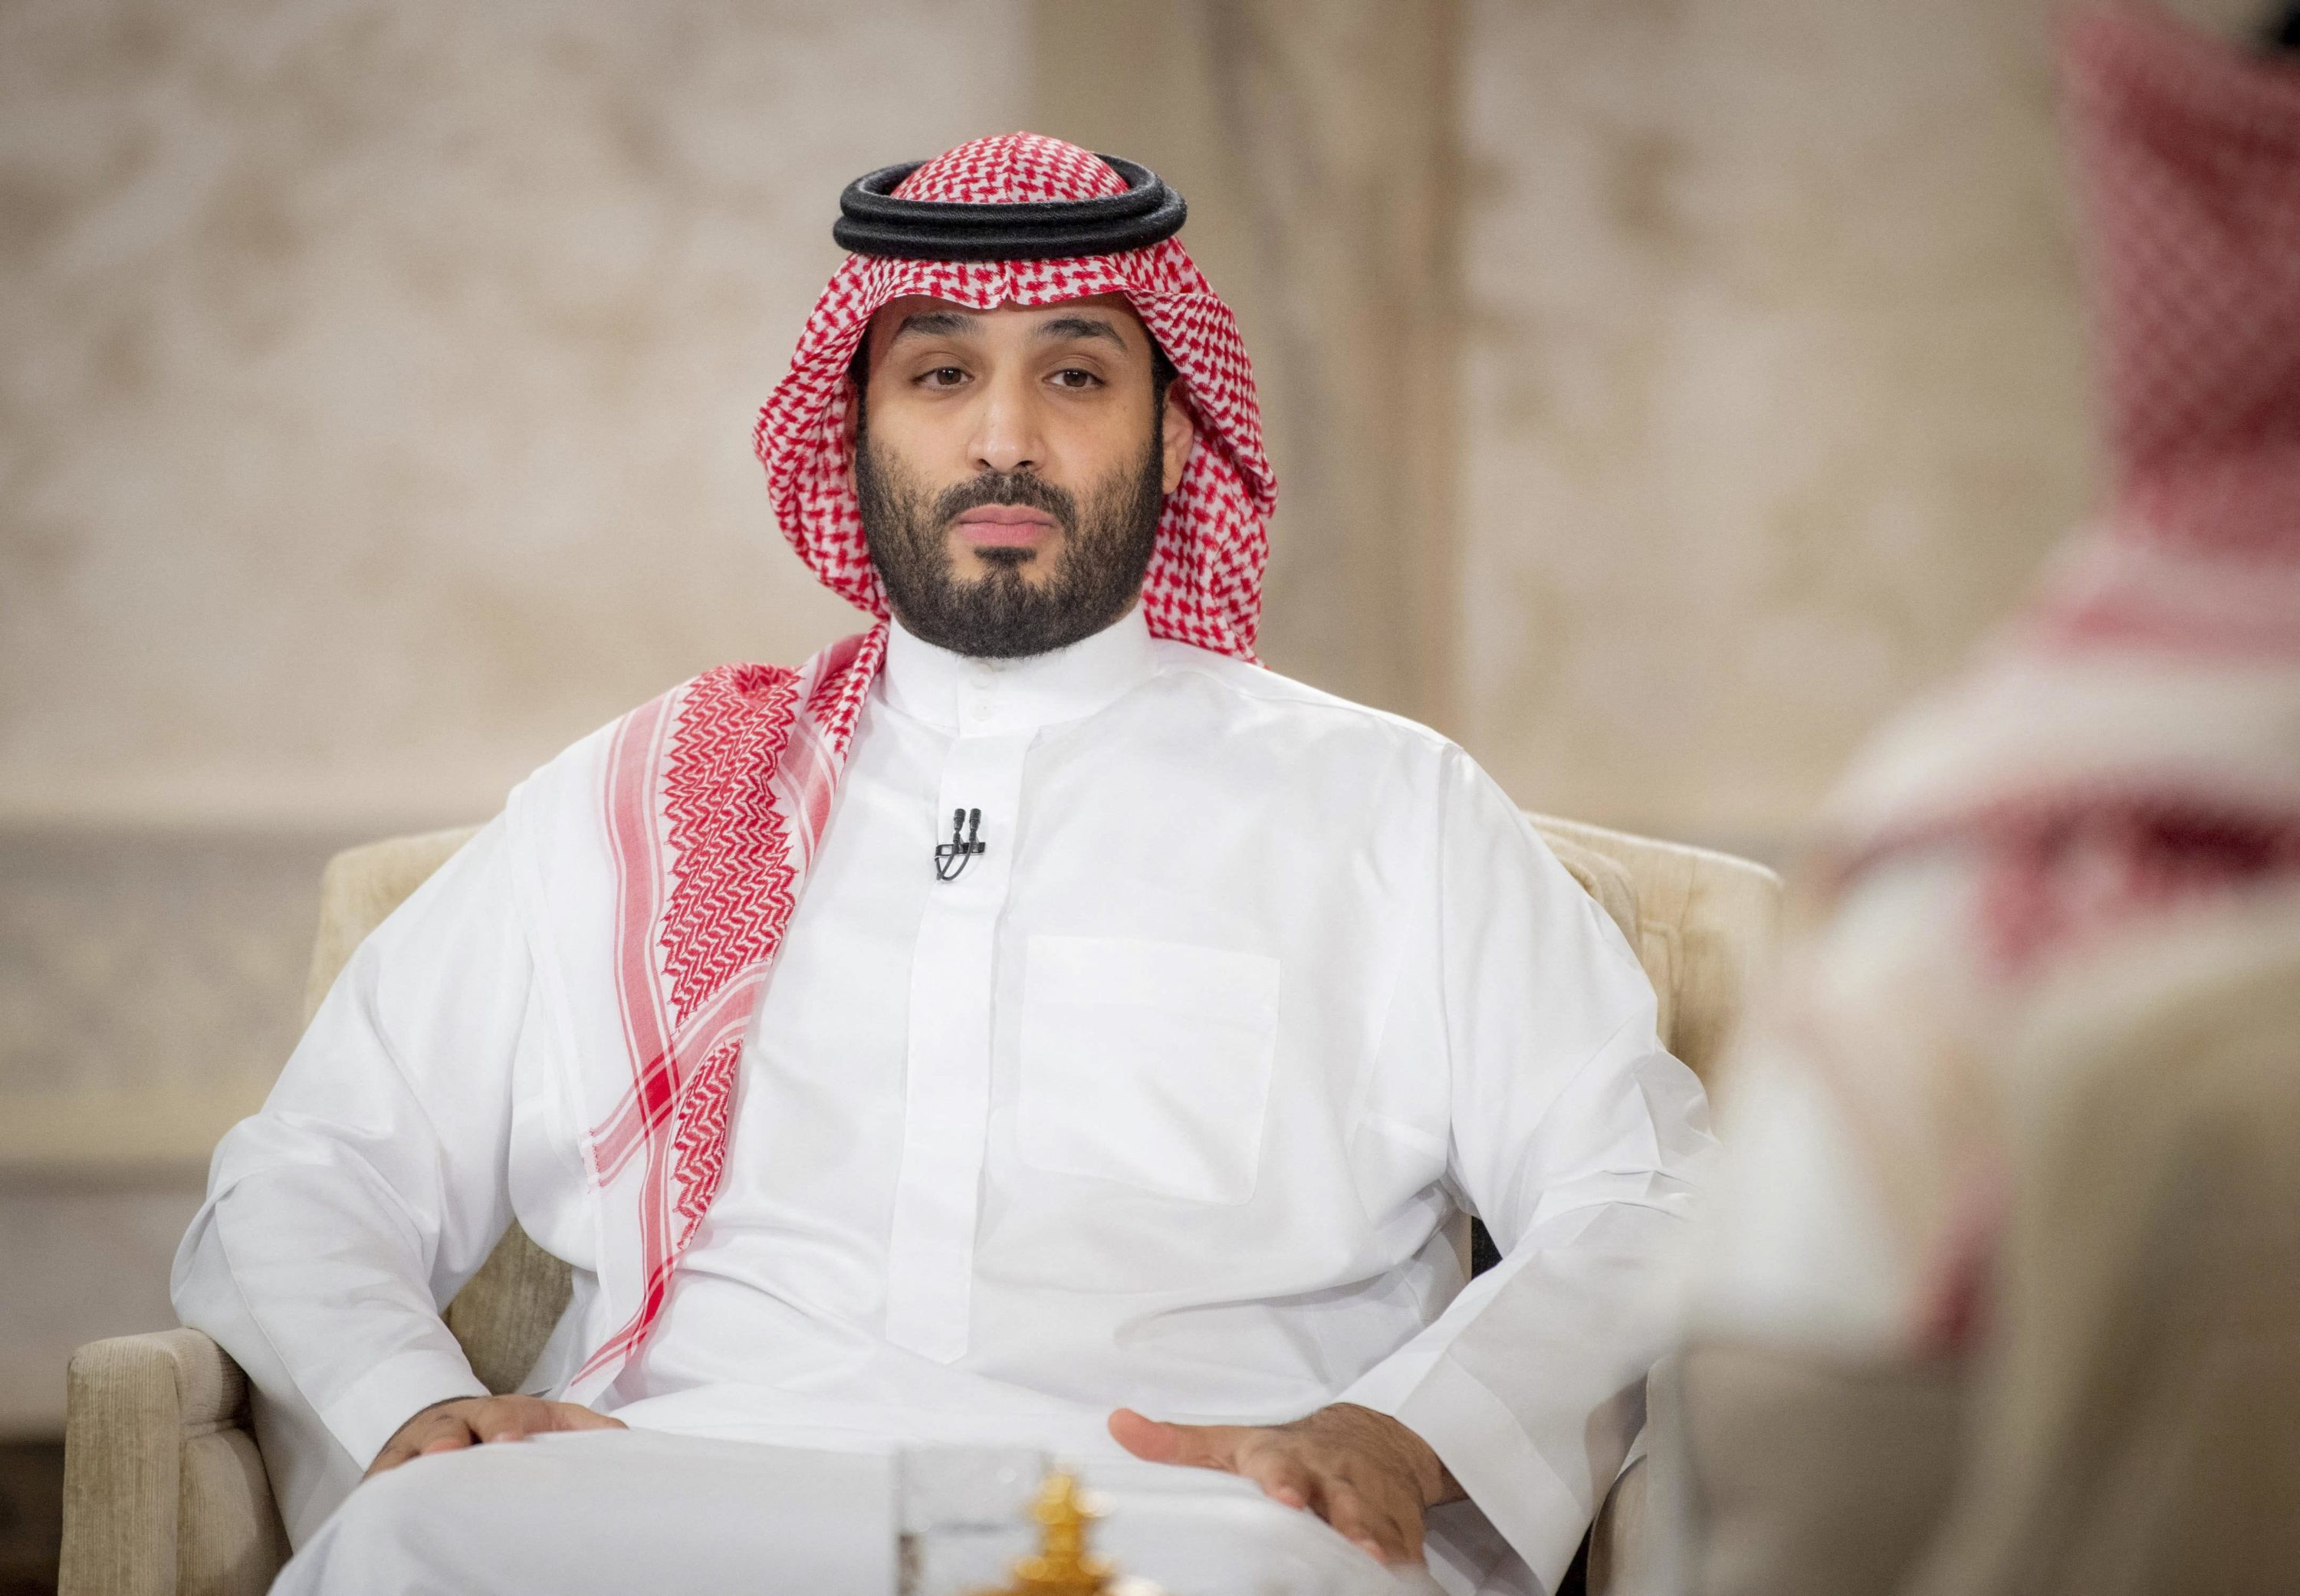 (FILES) This handout picture provided by the Saudi Royal Palace on April 27, 2021, shows Saudi Crown Prince Mohammed bin Salman during an interview with the Middle East Broadcasting Center (MBC) in the capital Riyadh to mark the fifth anniversary of his vision 2030. - Two lawsuits pitting Saudi Arabia's de facto ruler against a former intelligence czar threaten to expose highly sensitive US government secrets, prompting Washington to consider a rare judicial intervention, documents show. (Photo by Bandar AL-JALOUD / Saudi Royal Palace / AFP) / RESTRICTED TO EDITORIAL USE - MANDATORY CREDIT